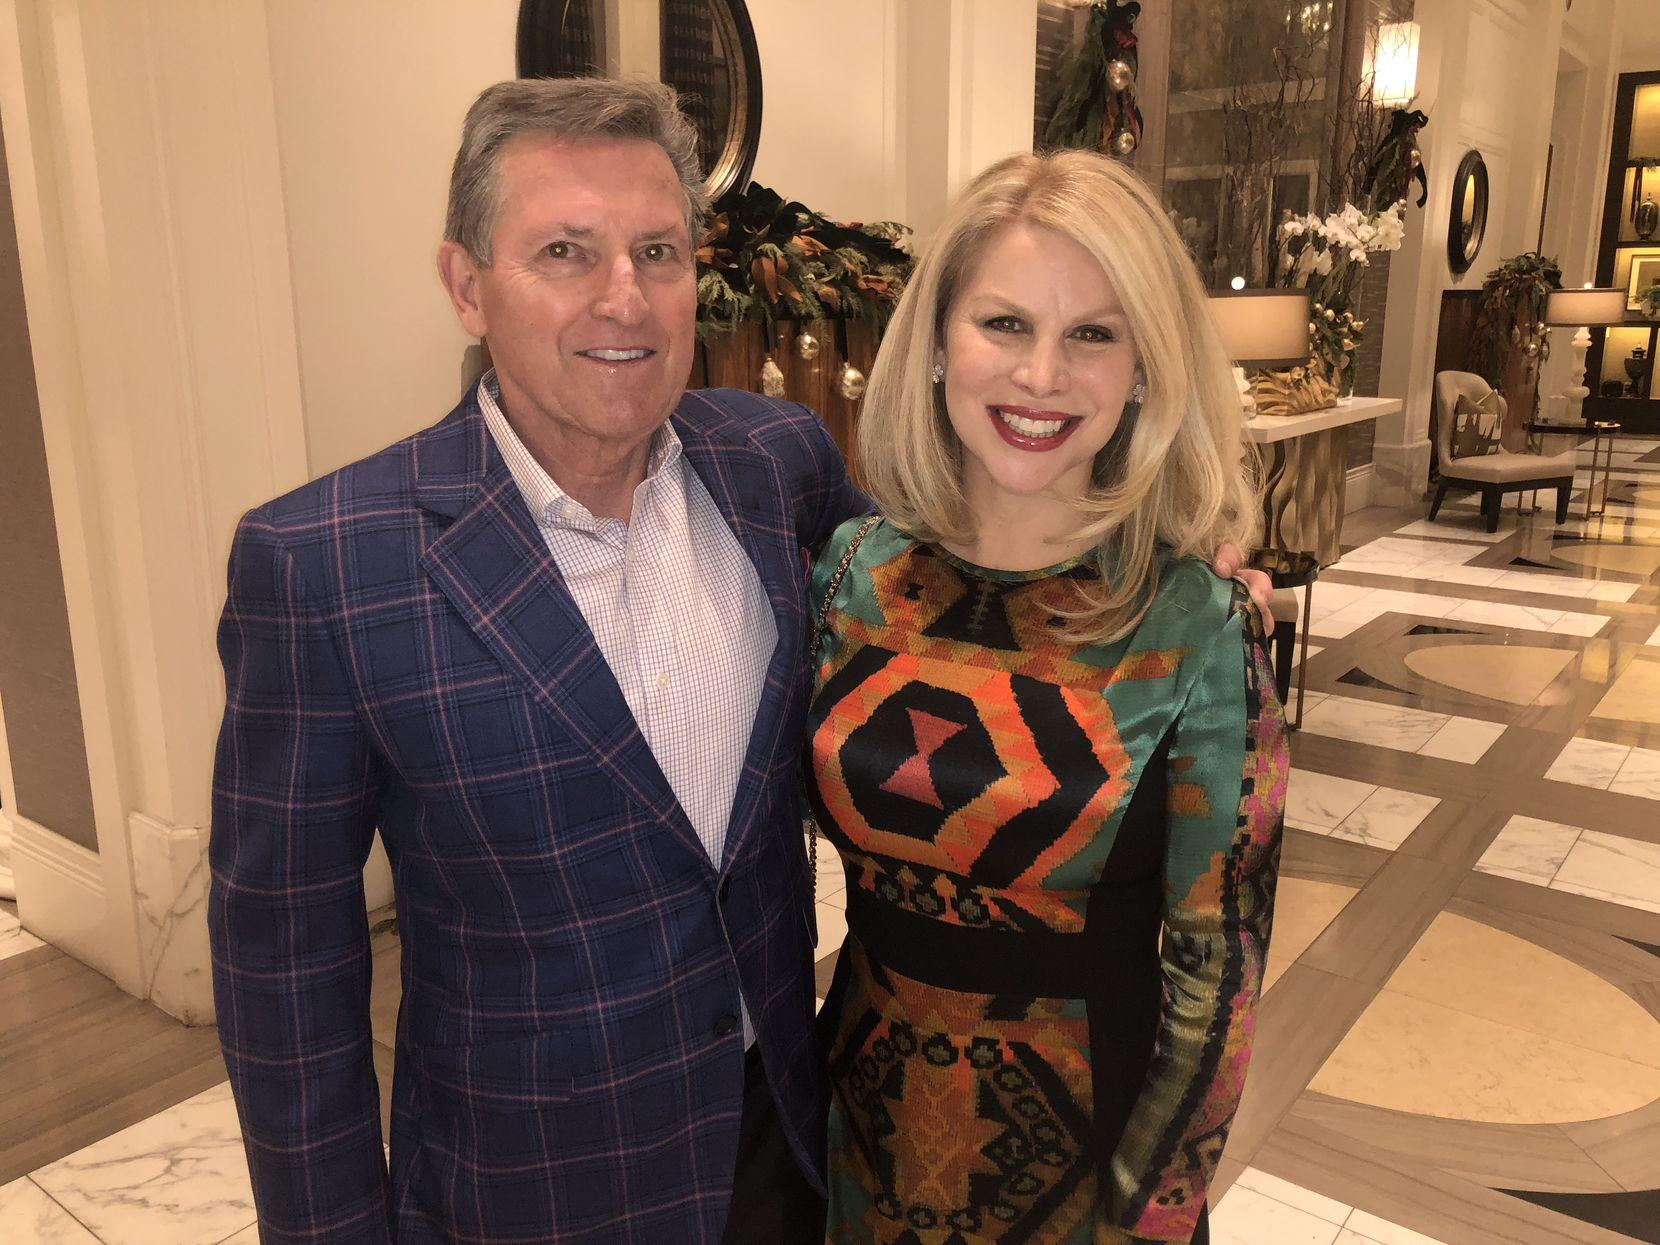 Former Dallas Police Chief David Kunkle and his wife, Sara Dodd, in 2018, prior to his diagnosis of Lewy body dementia.